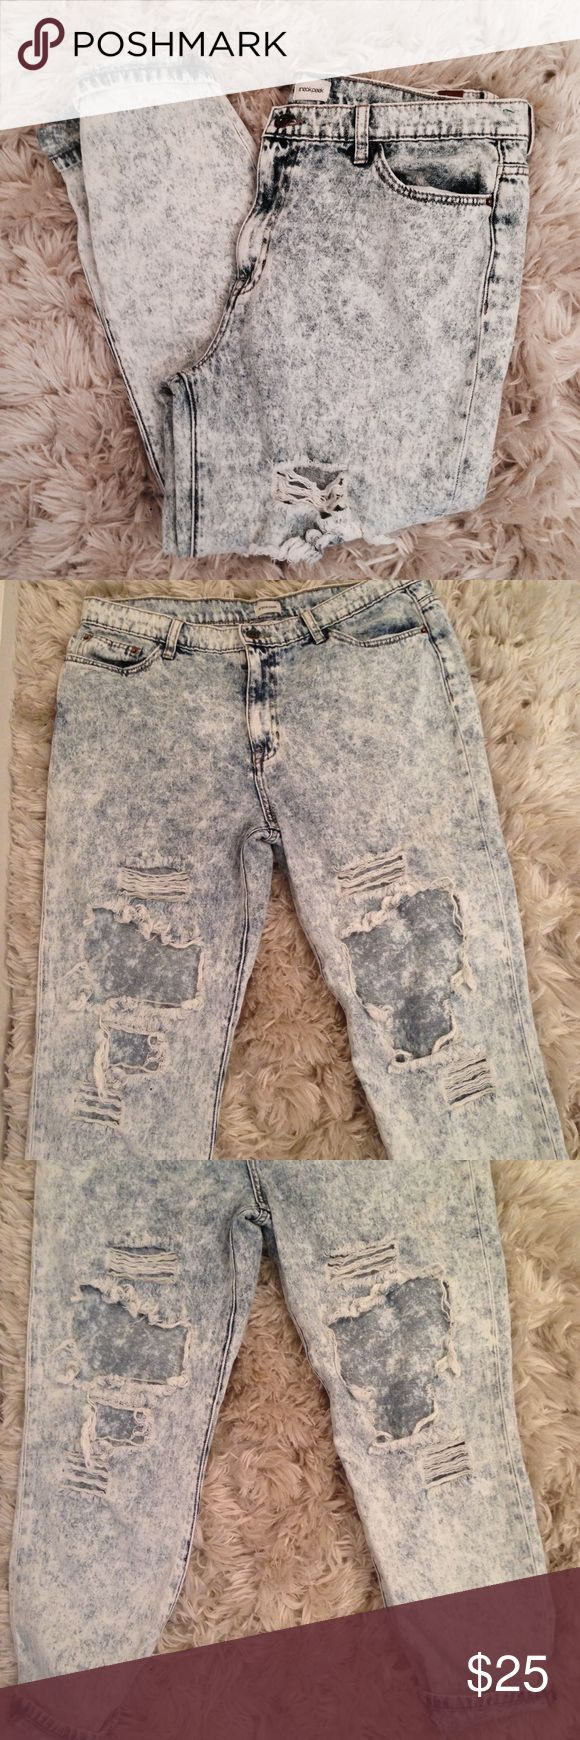 """Boyfriend Distressed Acid Washed Jeans Good condition! Trendy - distressed. 17"""" waistband. 🚫Trades but I welcome considerable offers 🤘🏽 Sneak Peek Jeans Boyfriend"""